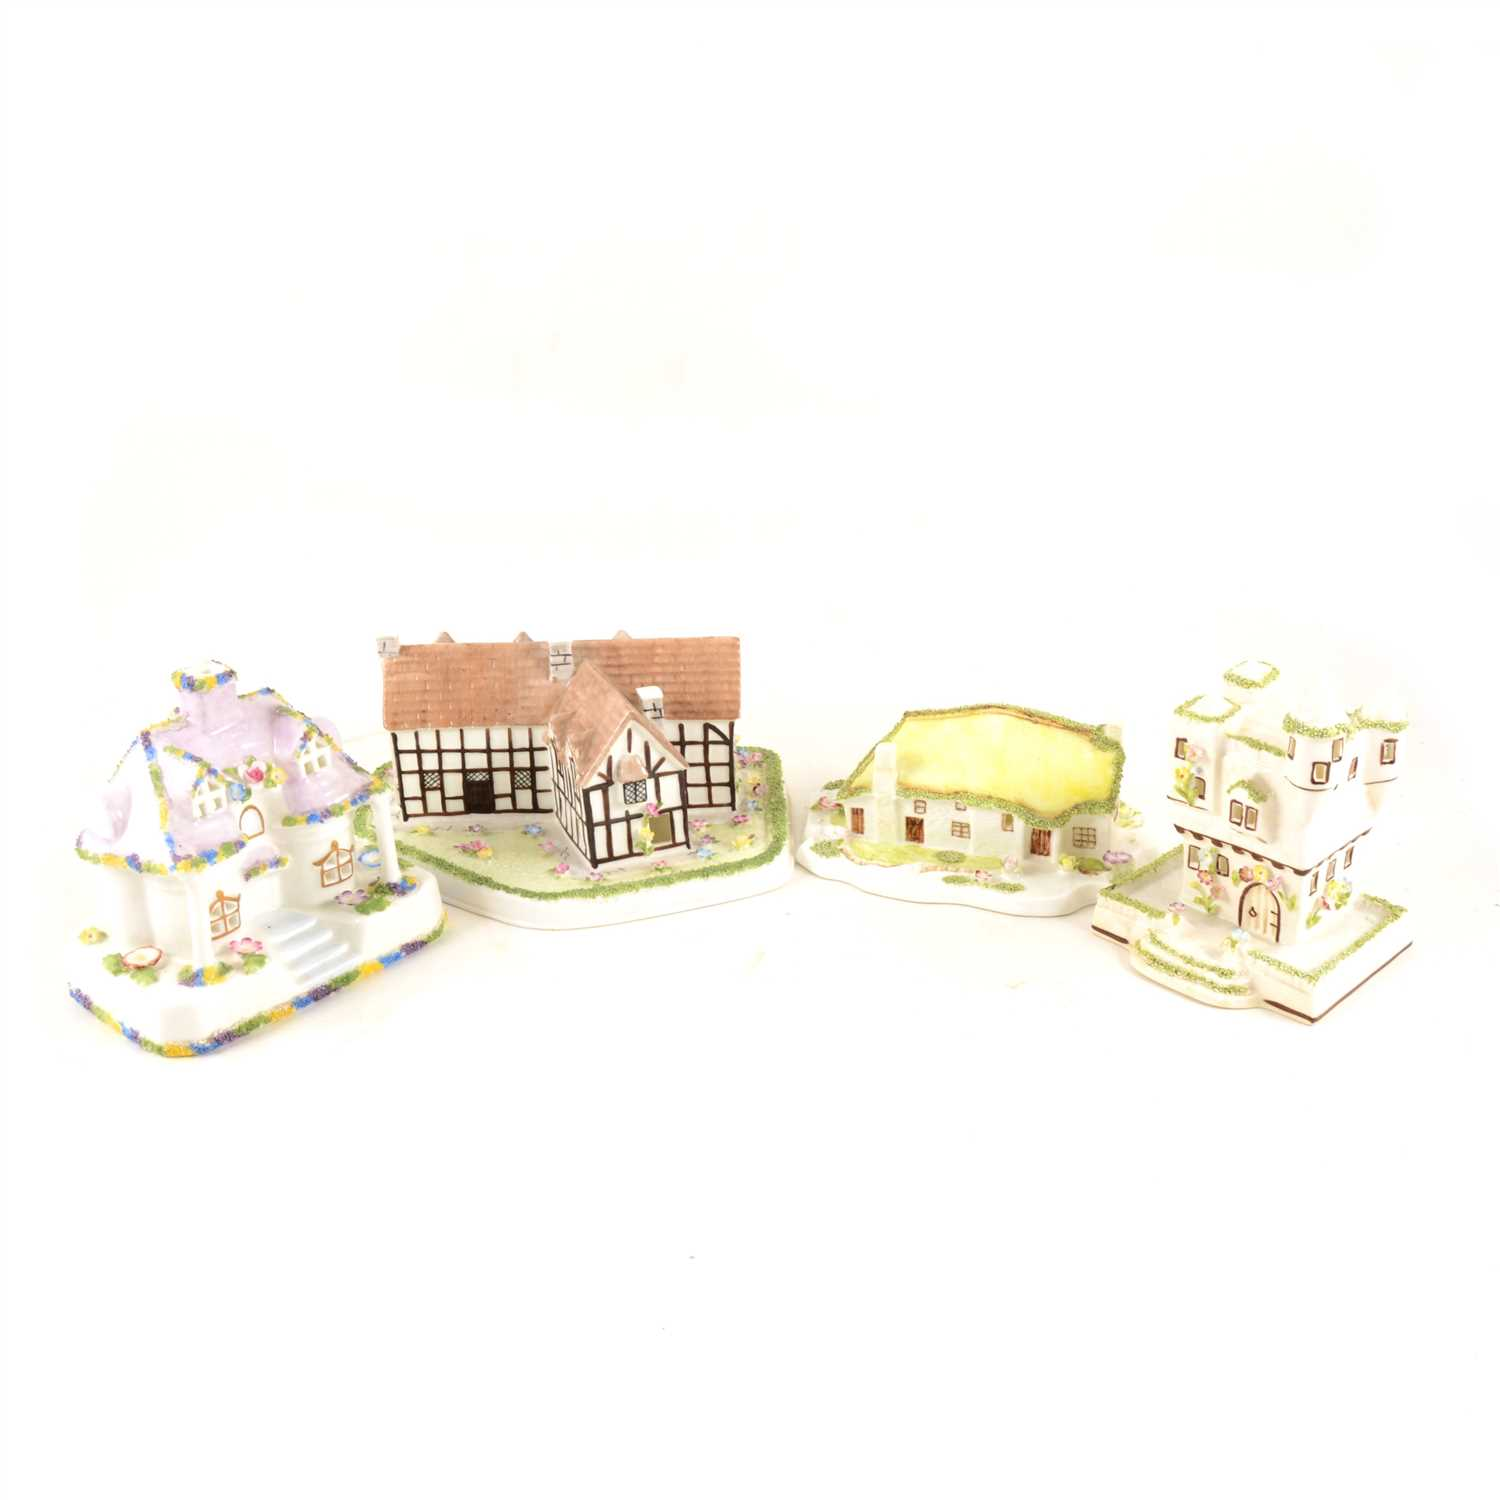 Lot 38-A collection of Coalport cottages, to include Watchdog Corner, with limited edition certificate, 231/500, Summer House, with limited edition certificate, 121/500, Shakespeare's Birthplace